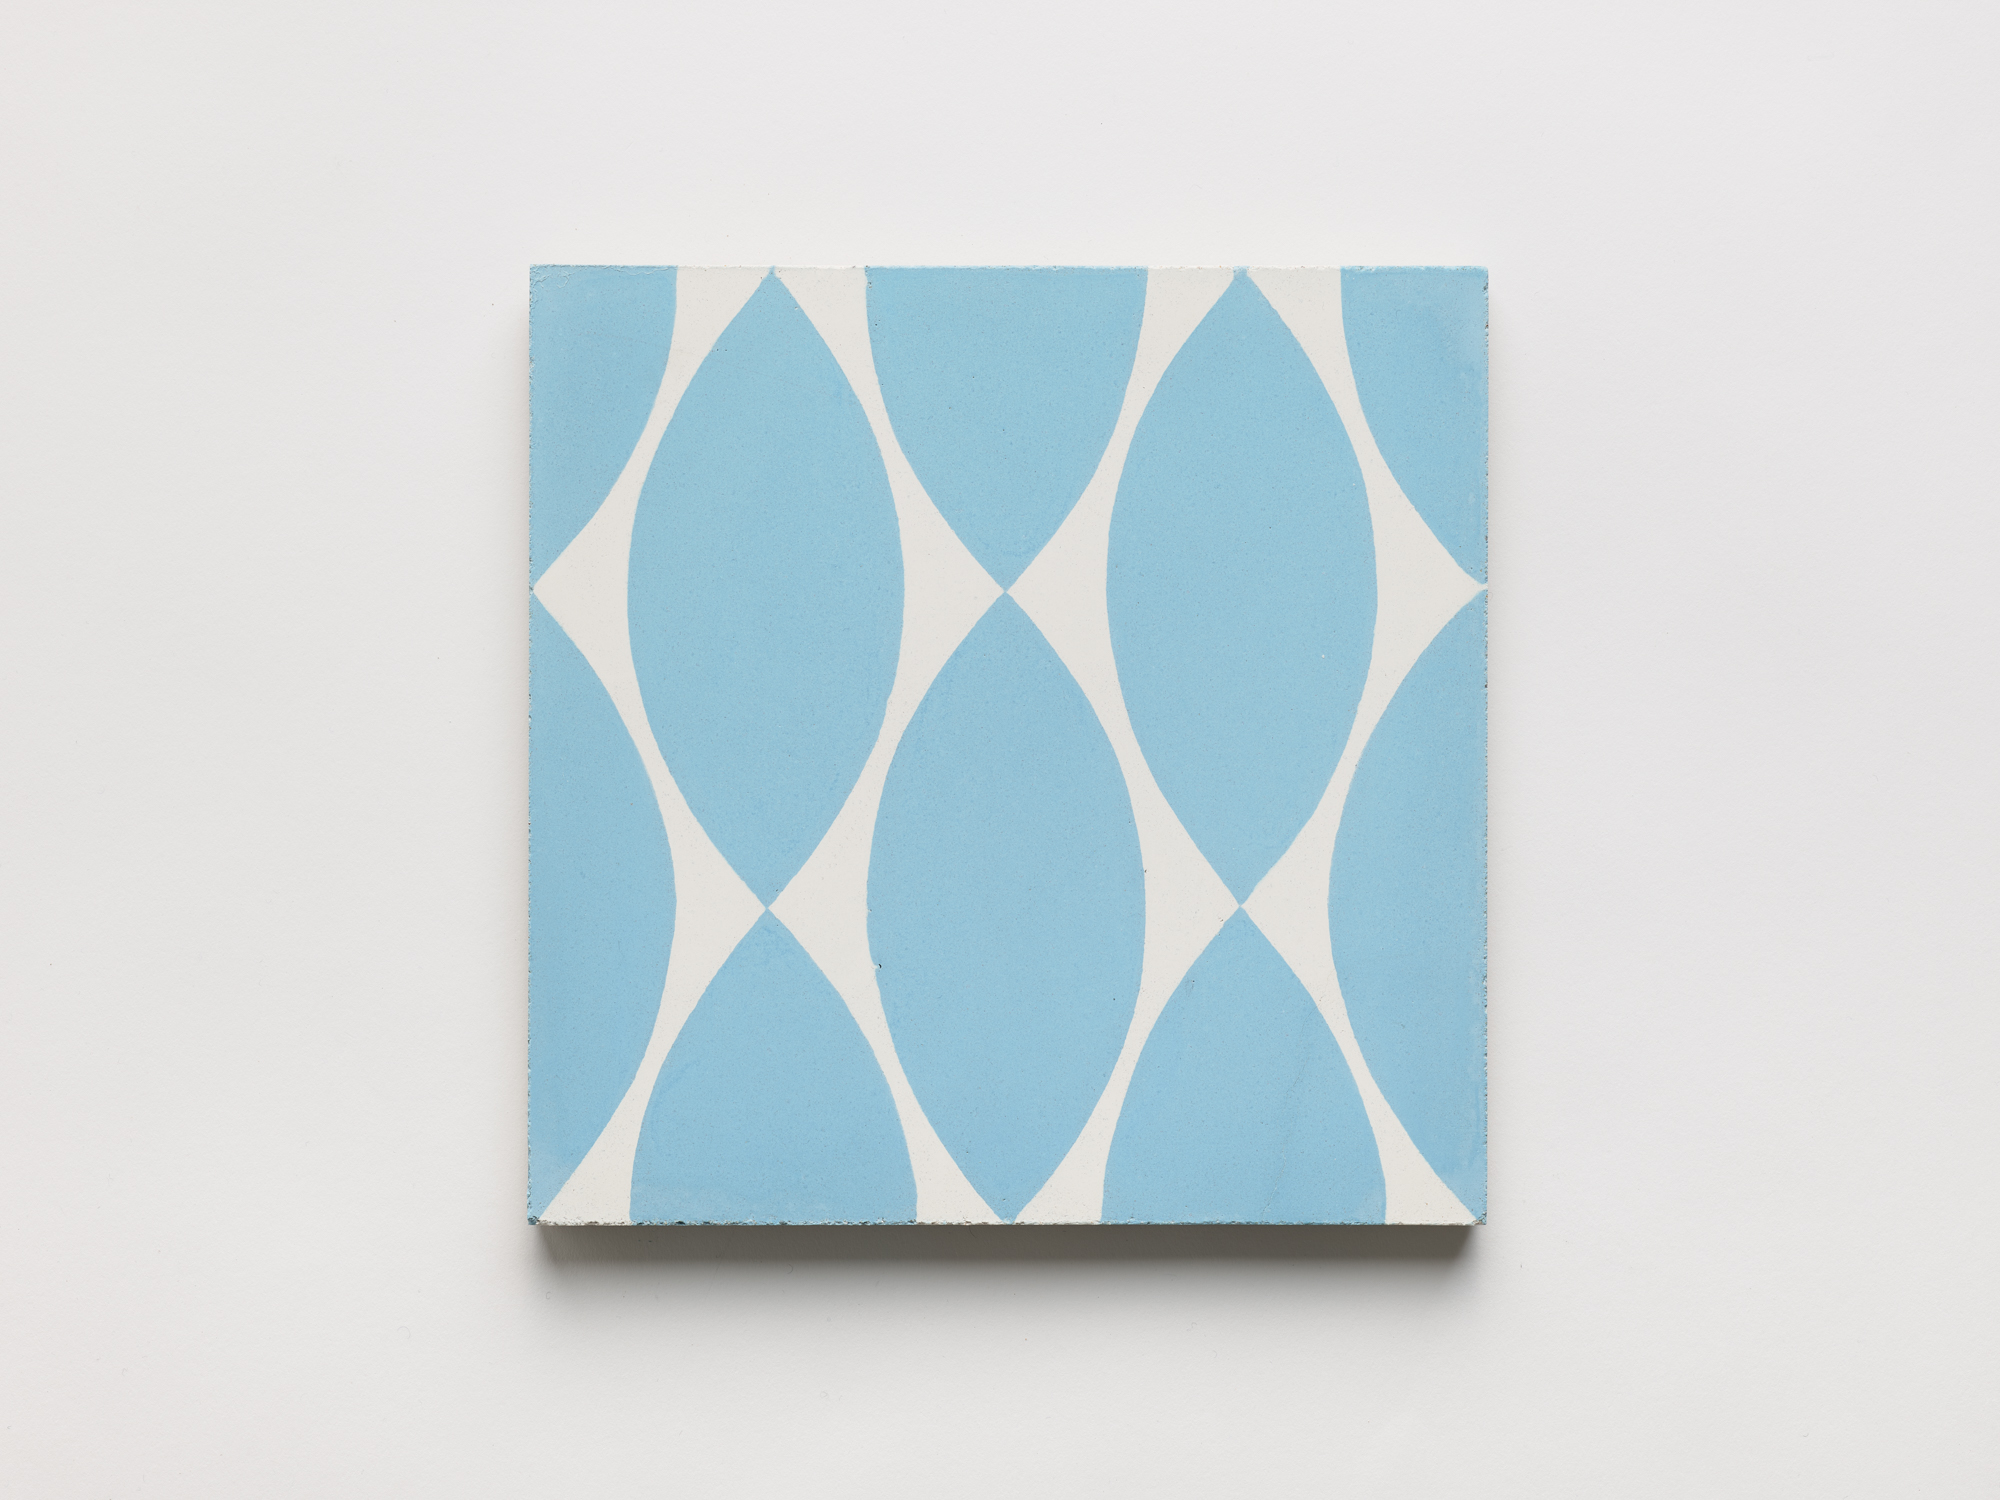 Cement tile designs for the